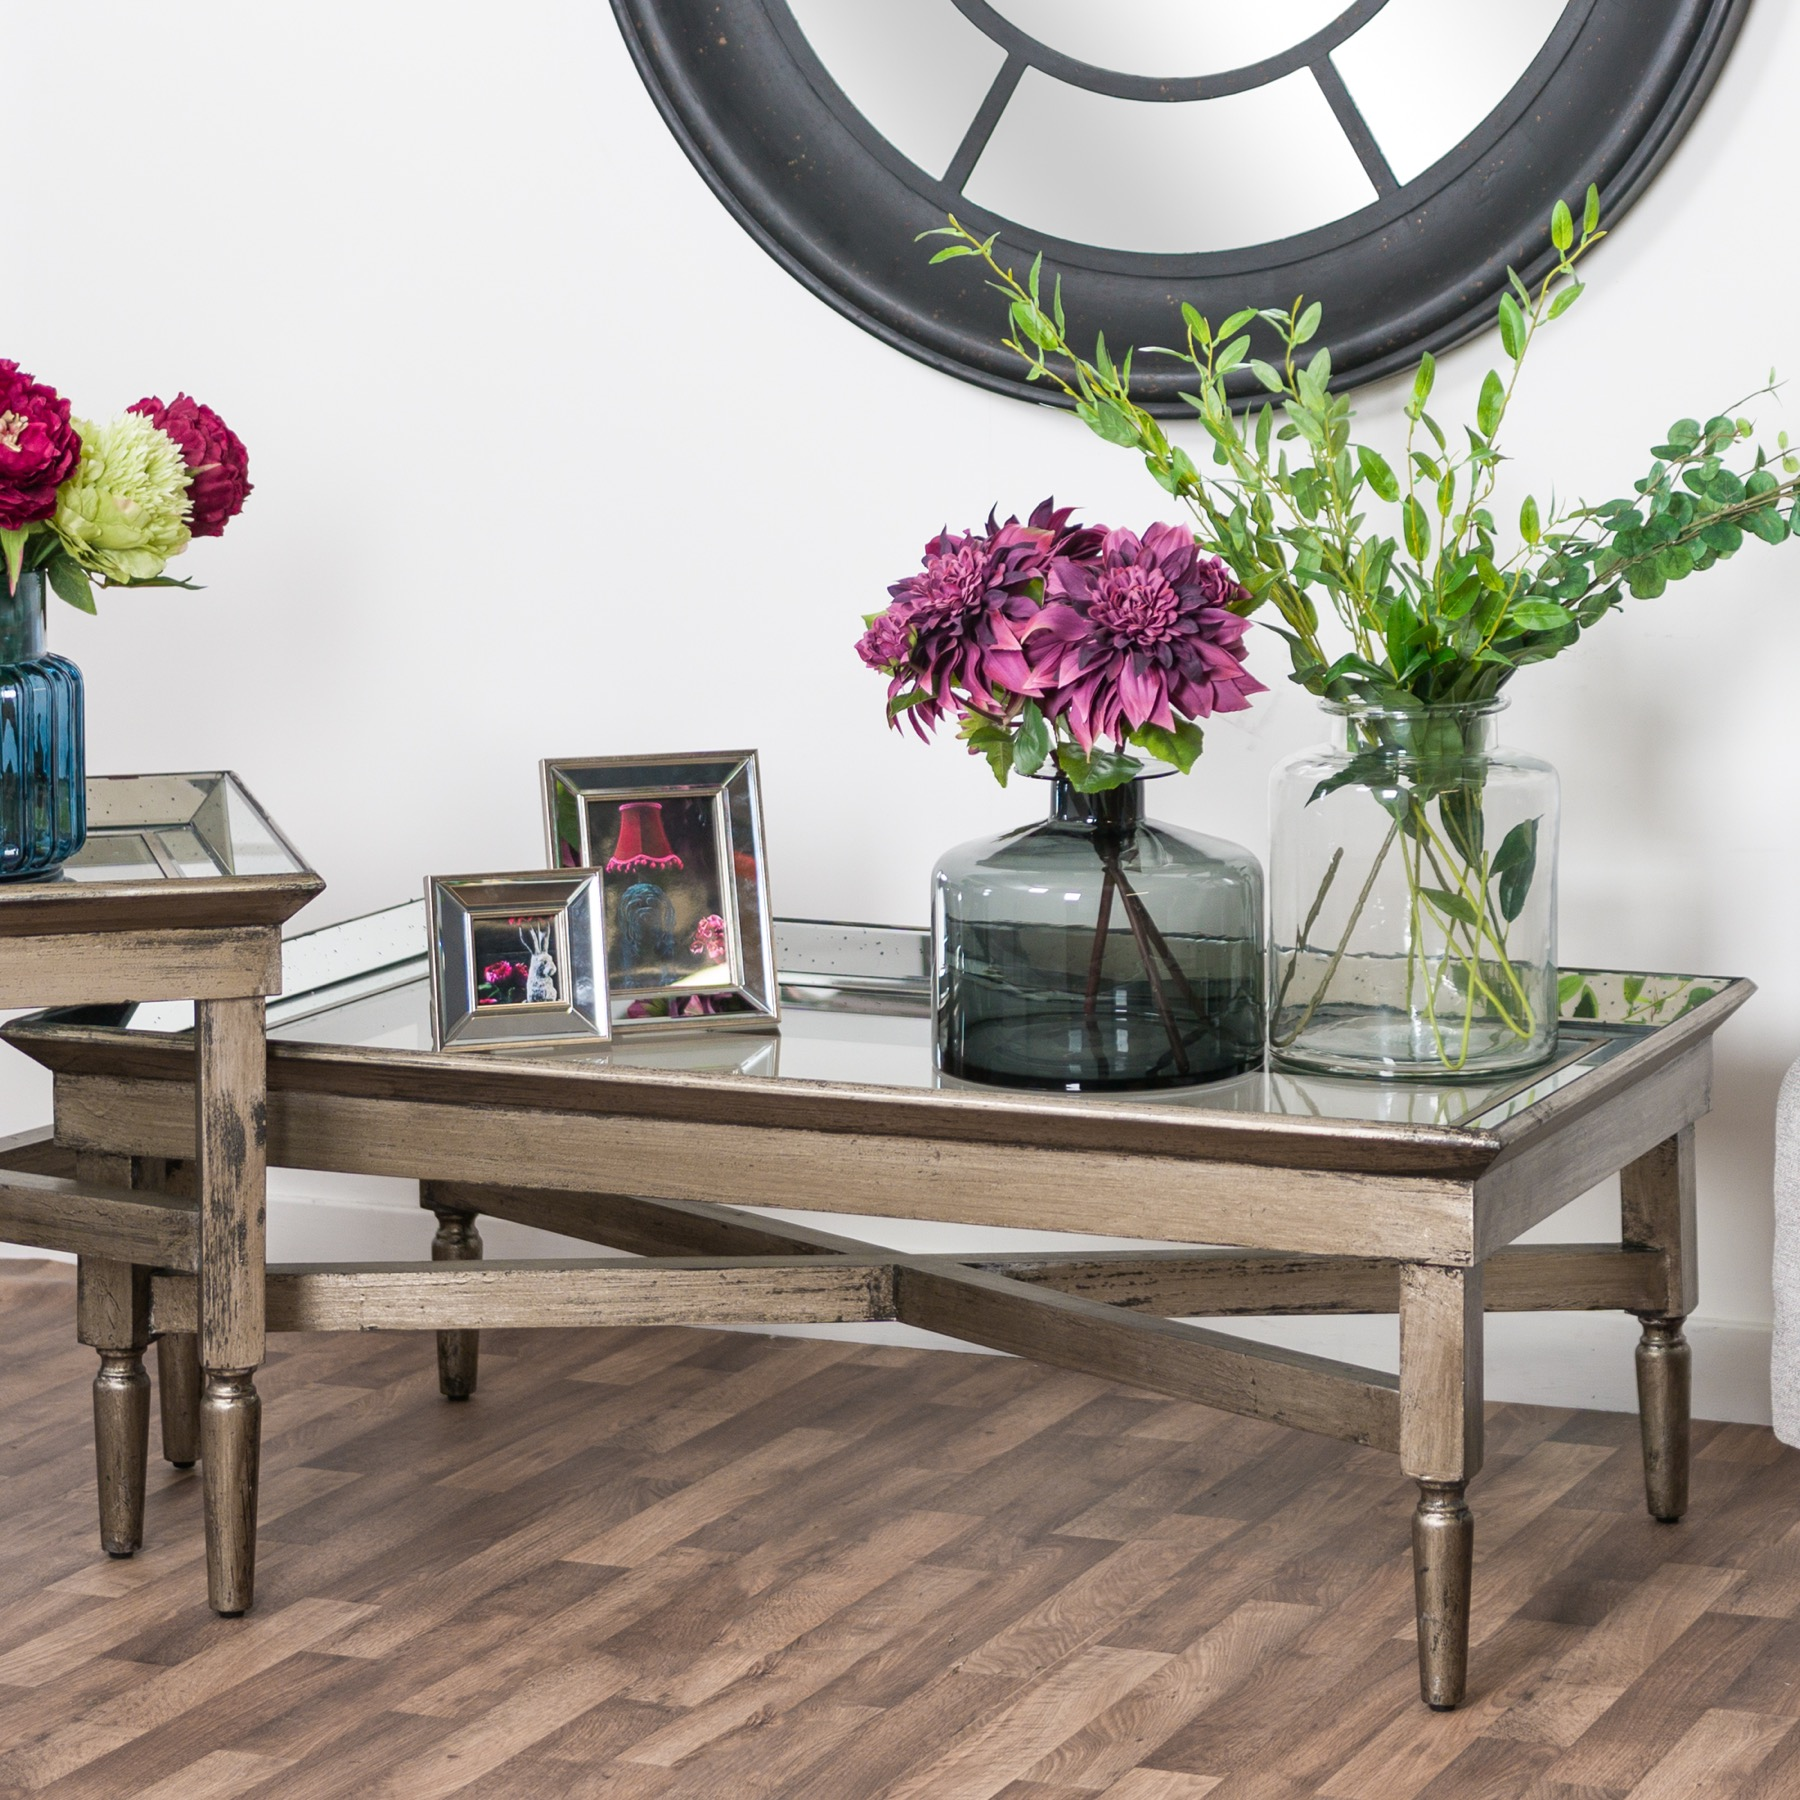 Astor Glass Coffee Table With Mirror Detailing - Image 3